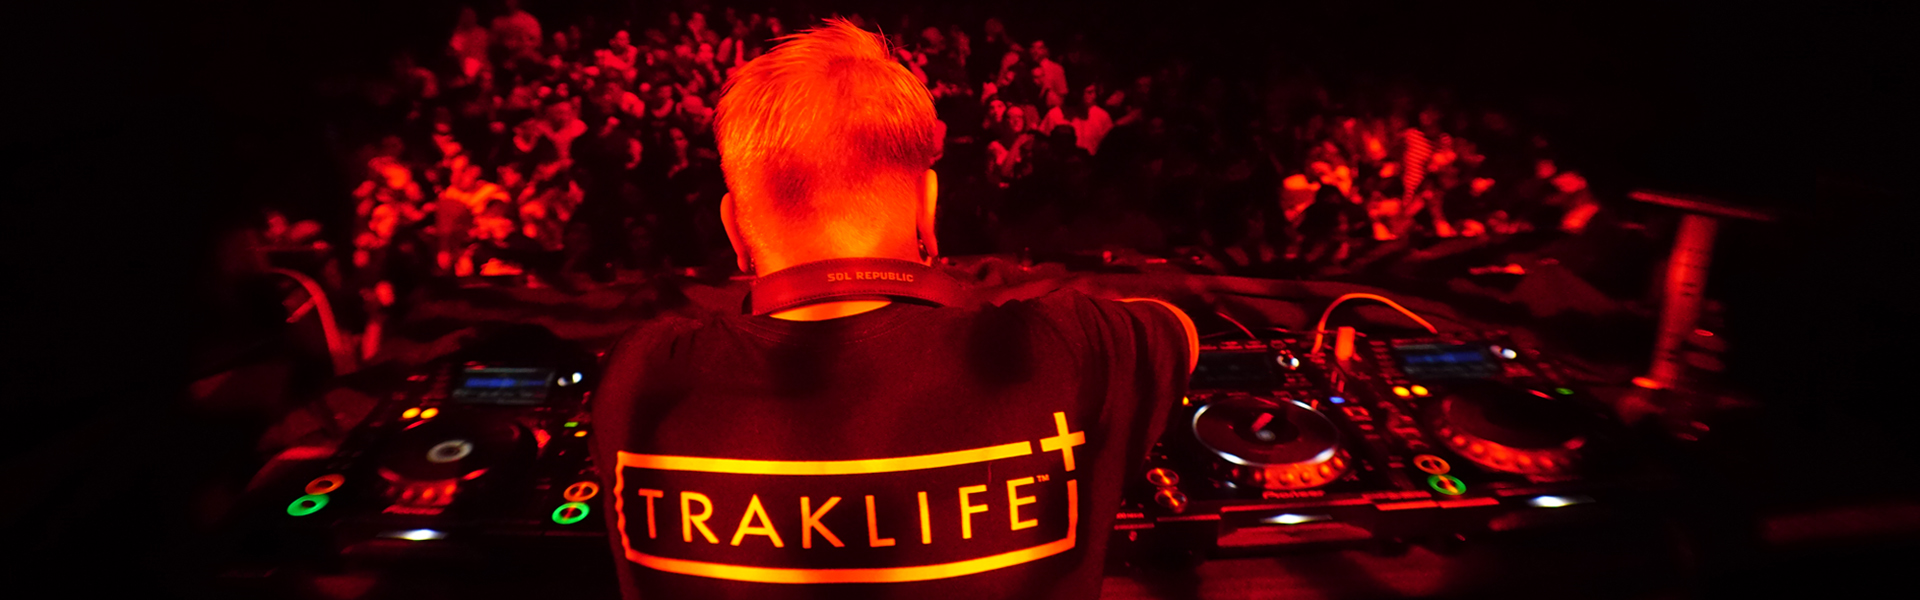 http://media.traklife.com/events/wp-content/uploads/sites/10/2018/10/traklife-events-banner6.jpg